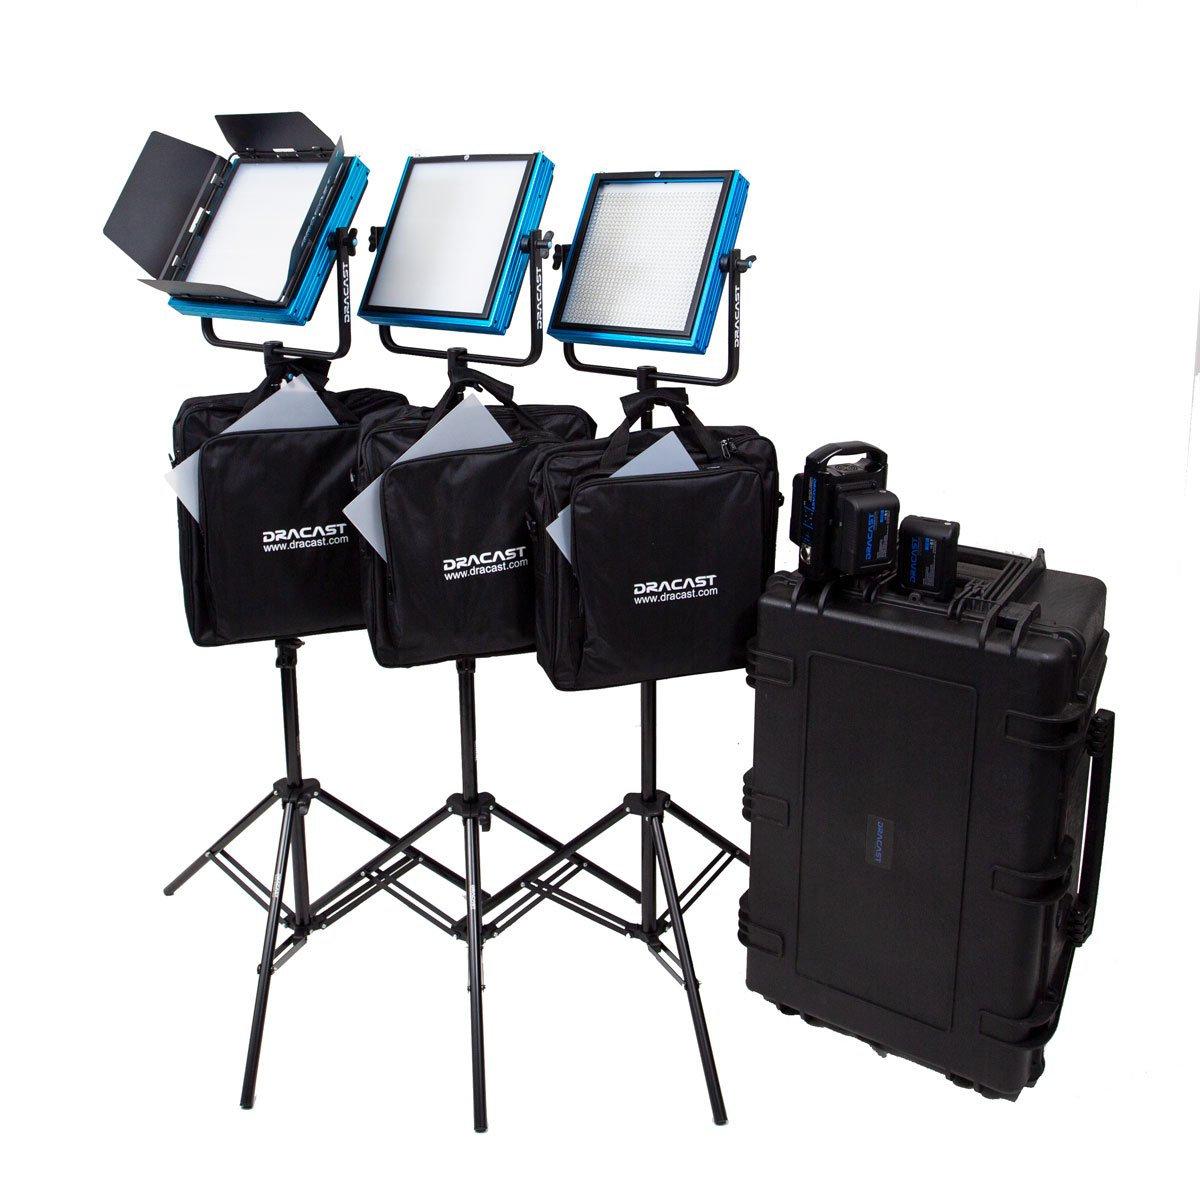 Dracast Plus LED1000 Bi-Color 3-Light Studio Kit with V-Mount and Gold Mount Battery Plates